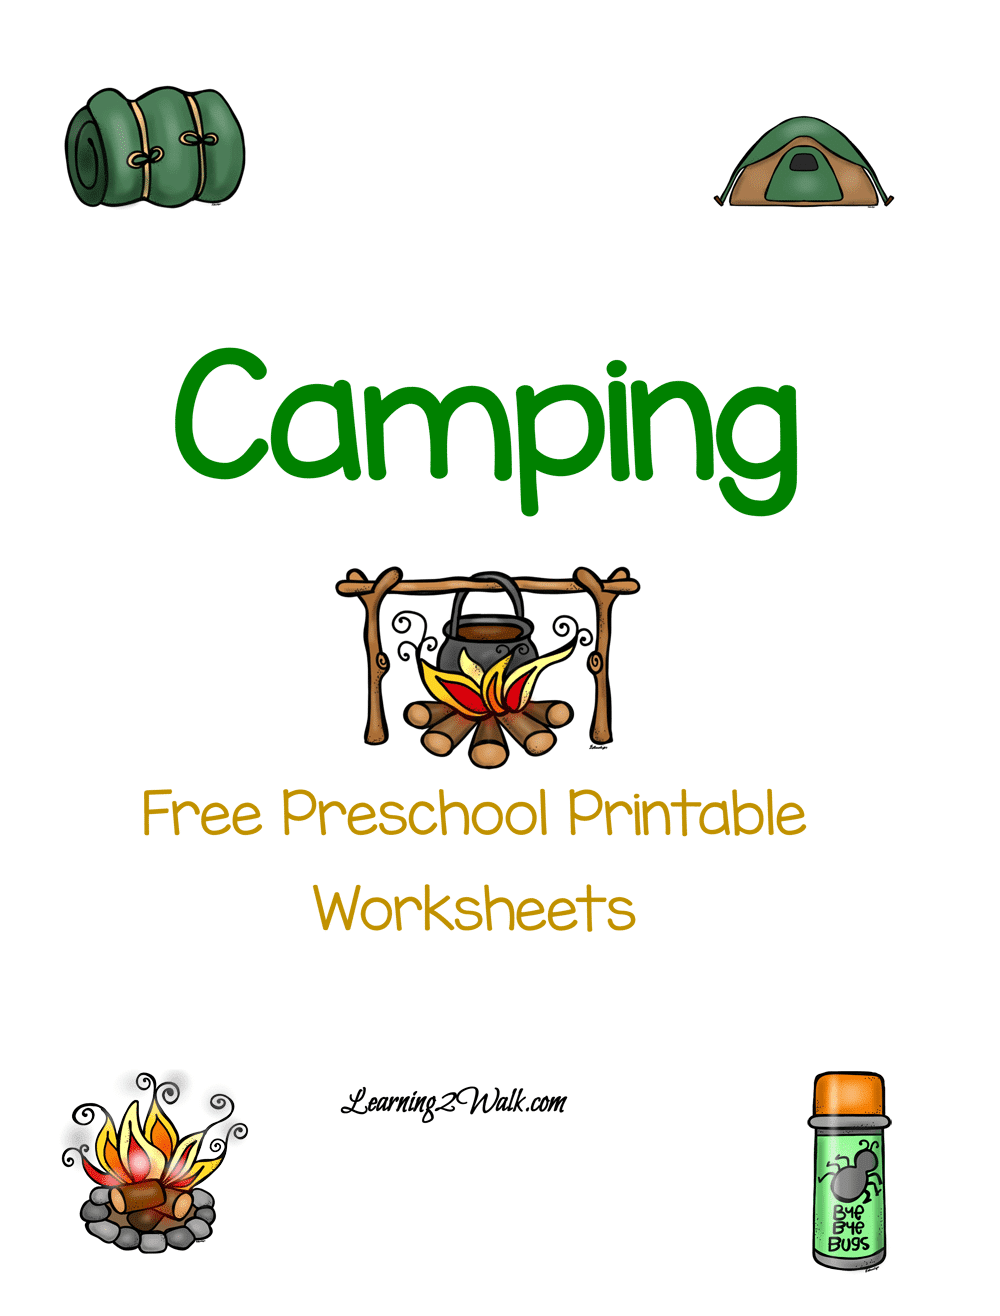 Looking for a for a fun camping printable for your preschoolers? Try these free preschool printable worksheets that is dedicated to camping